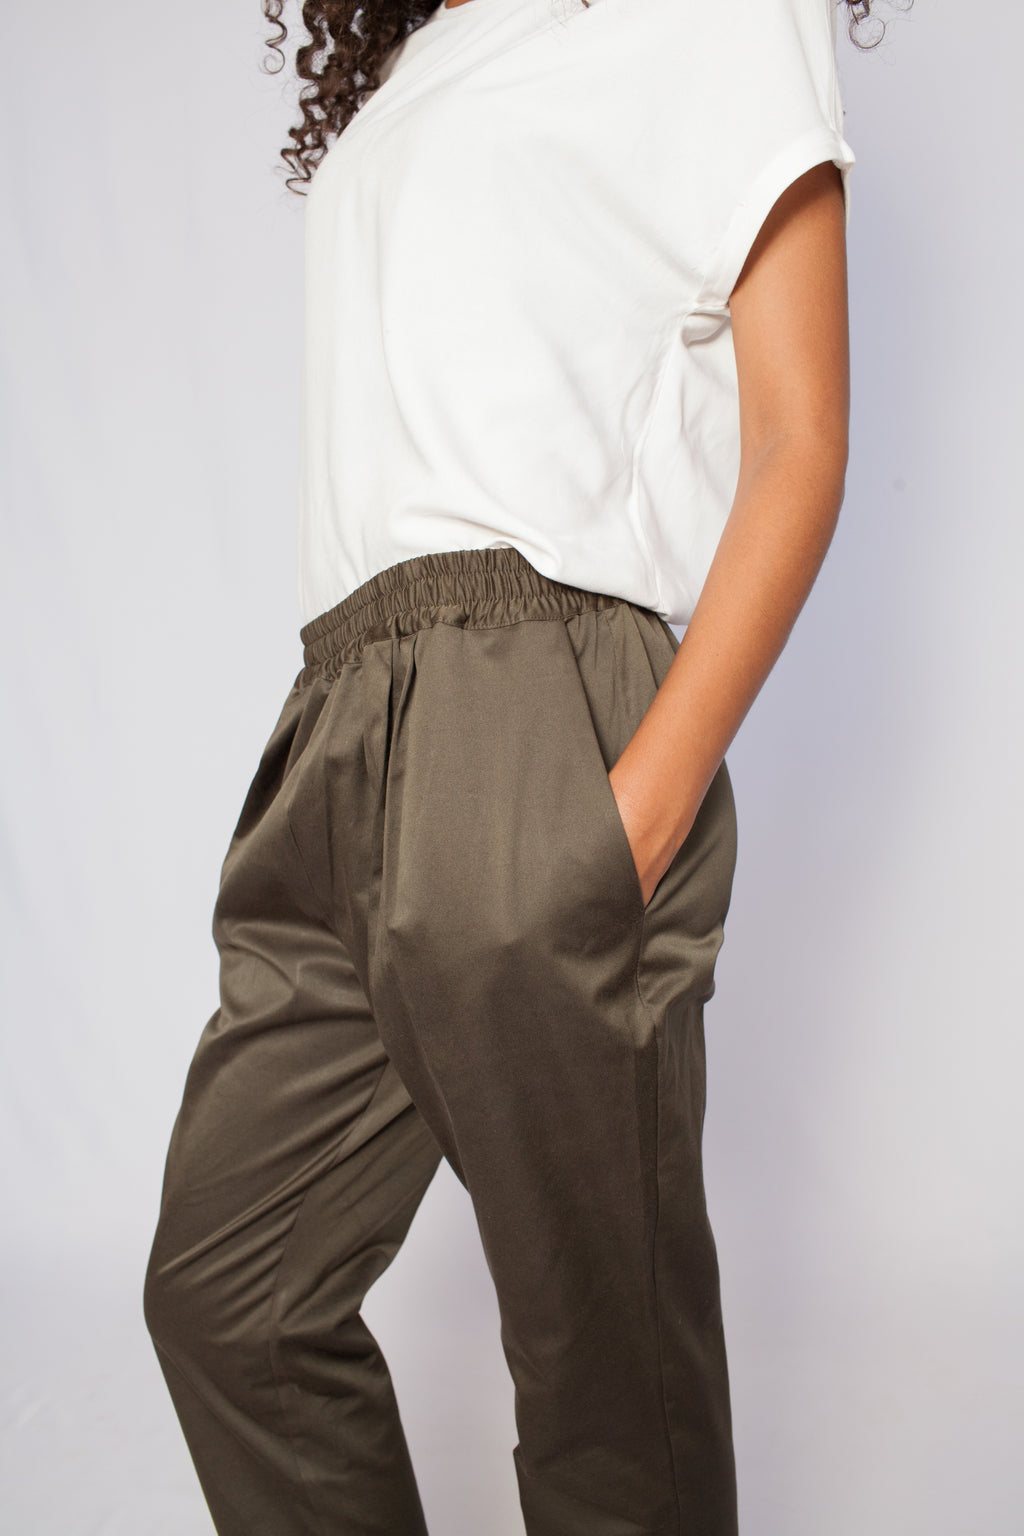 The Rift Valley Pants Safari Green